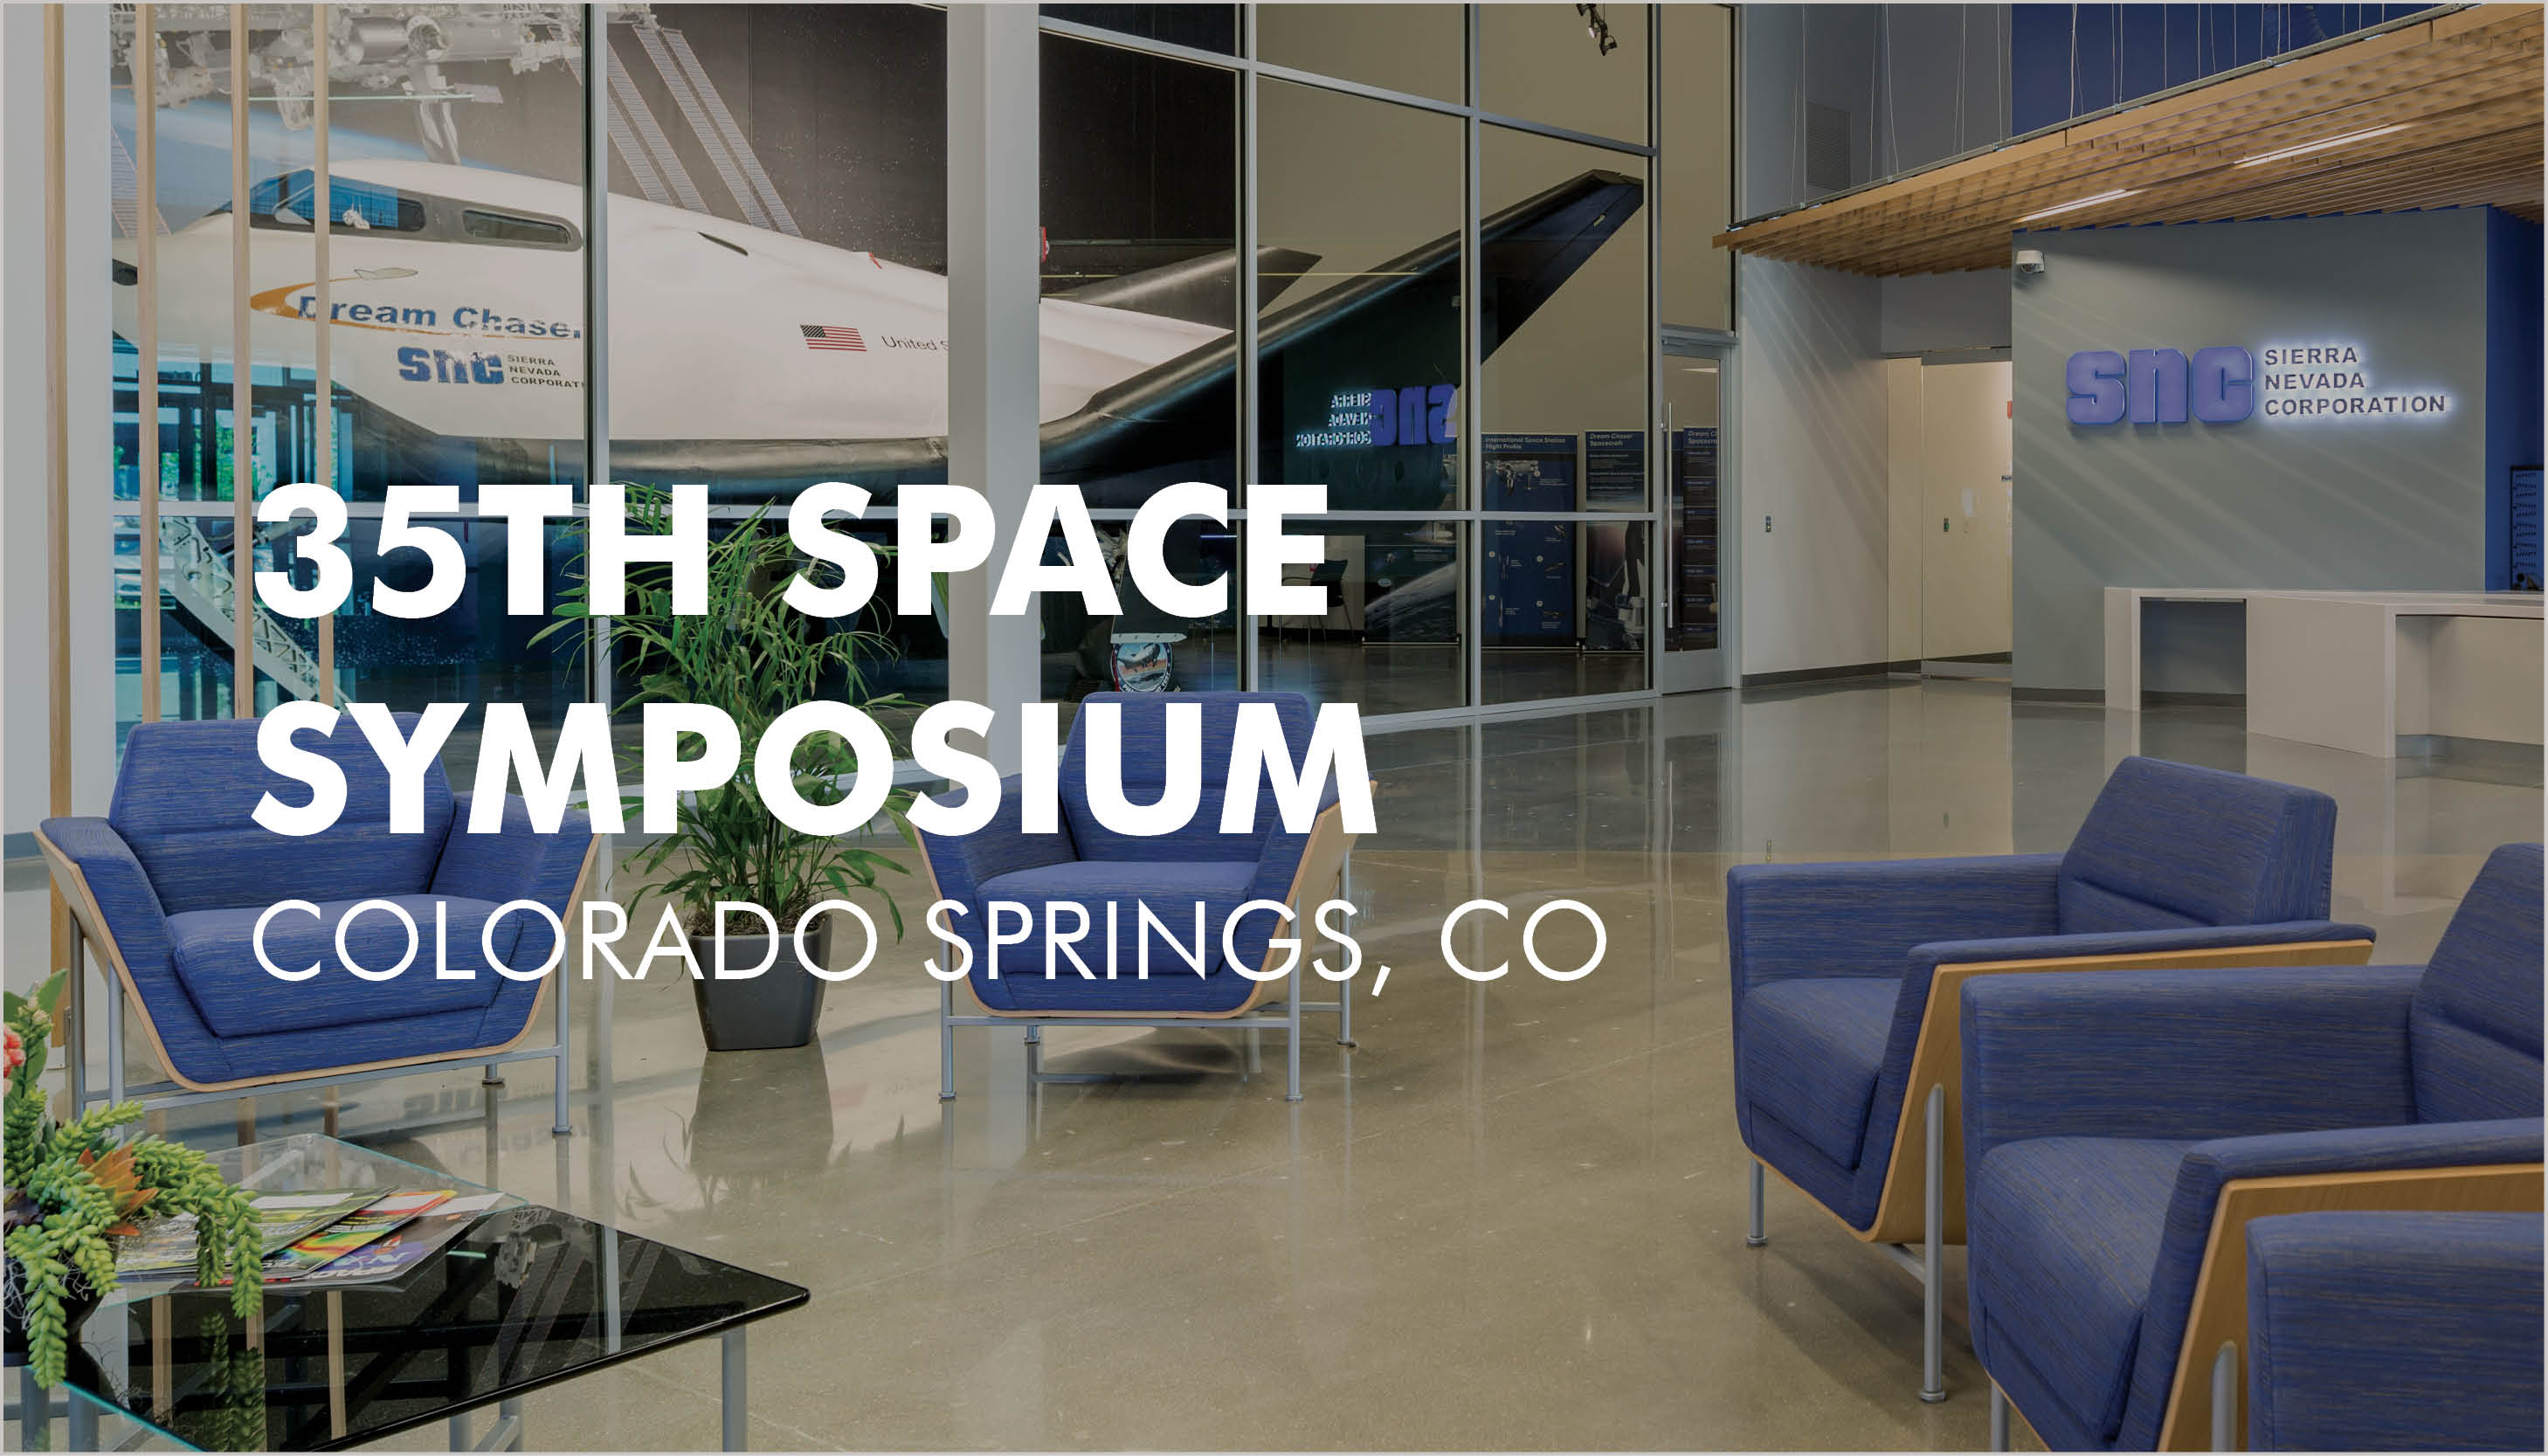 35th Space Symposium Image